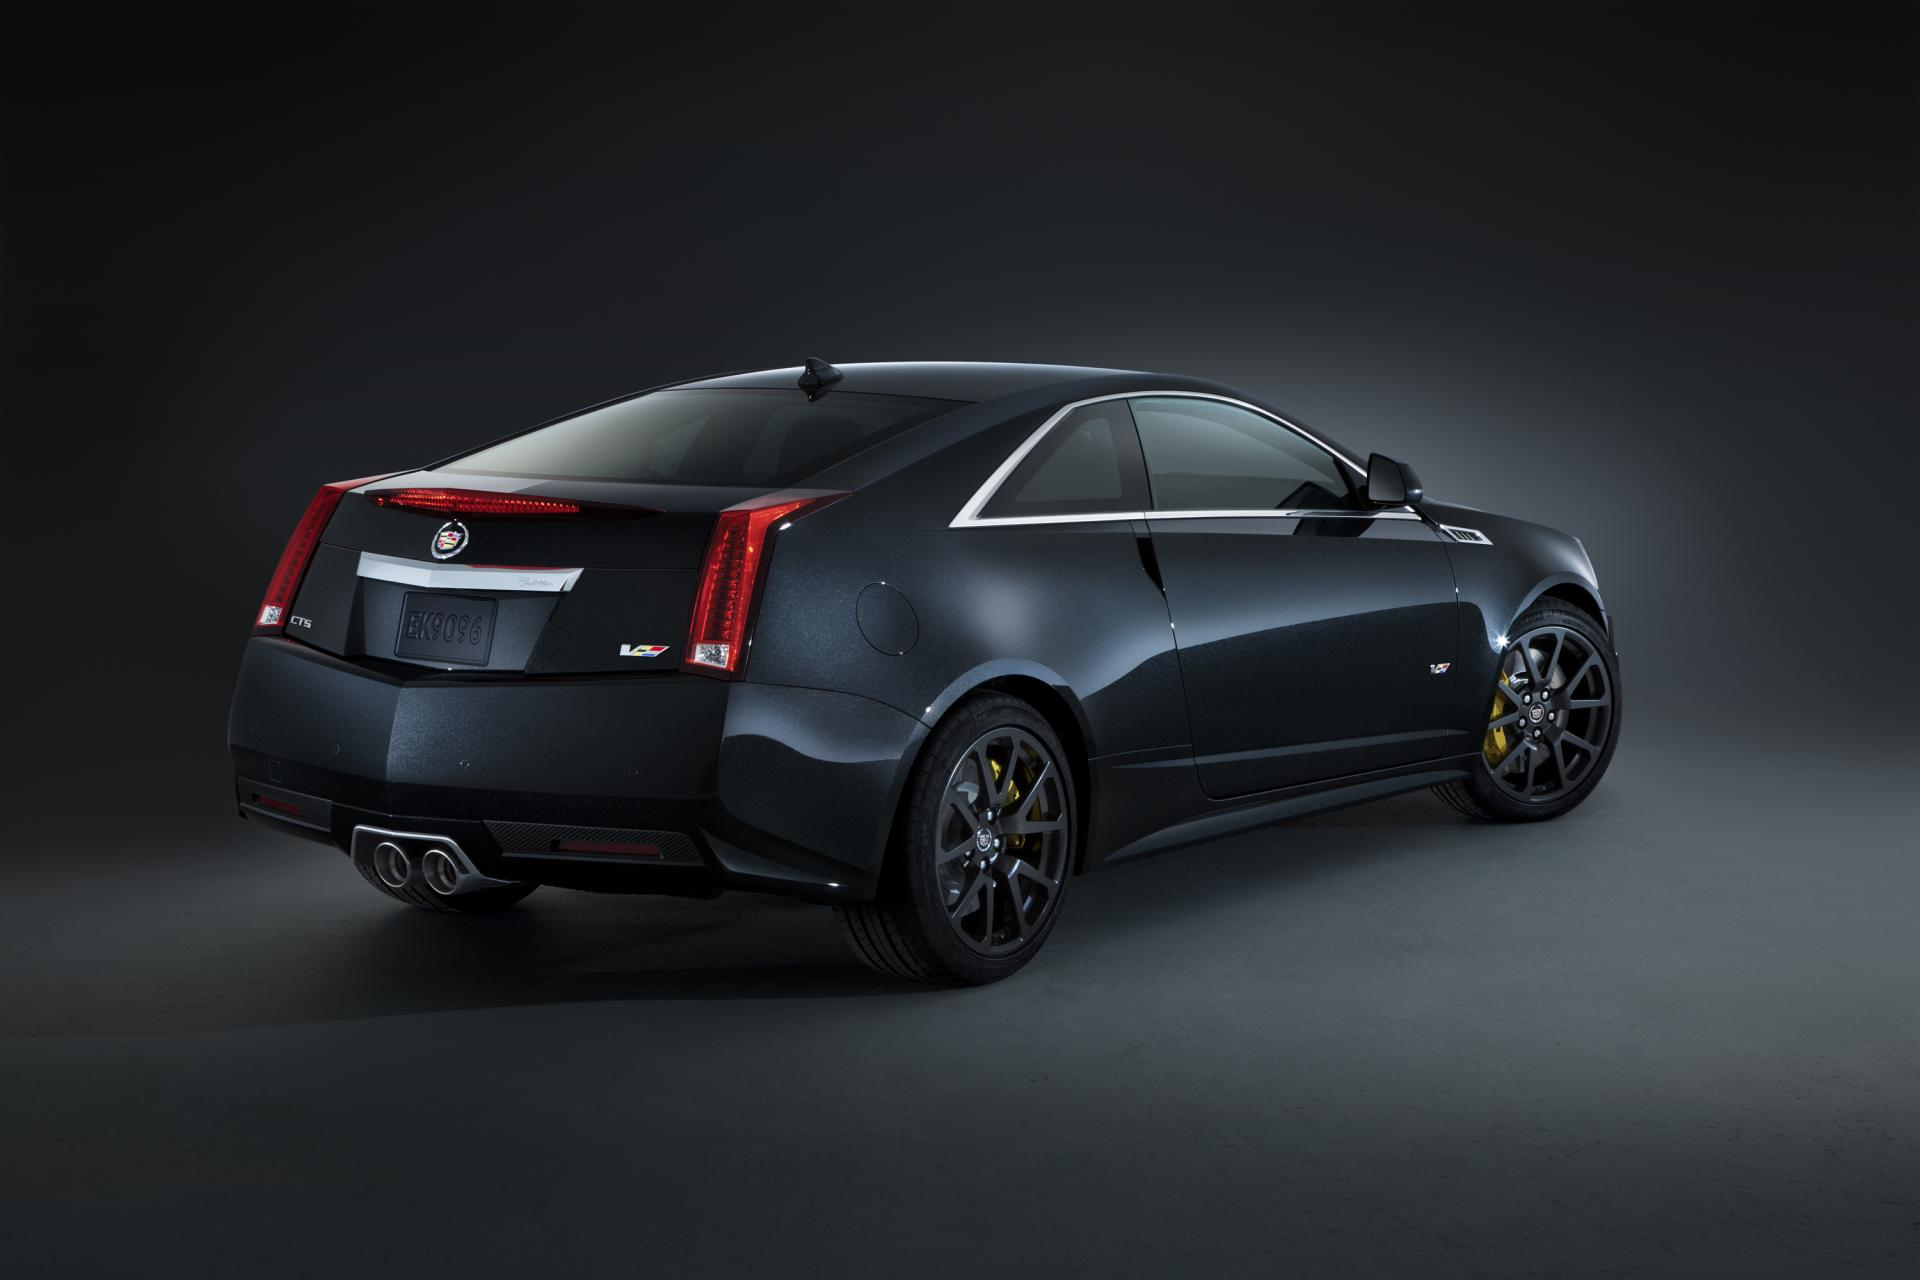 Cars cadillac cts coupe 2012 #1